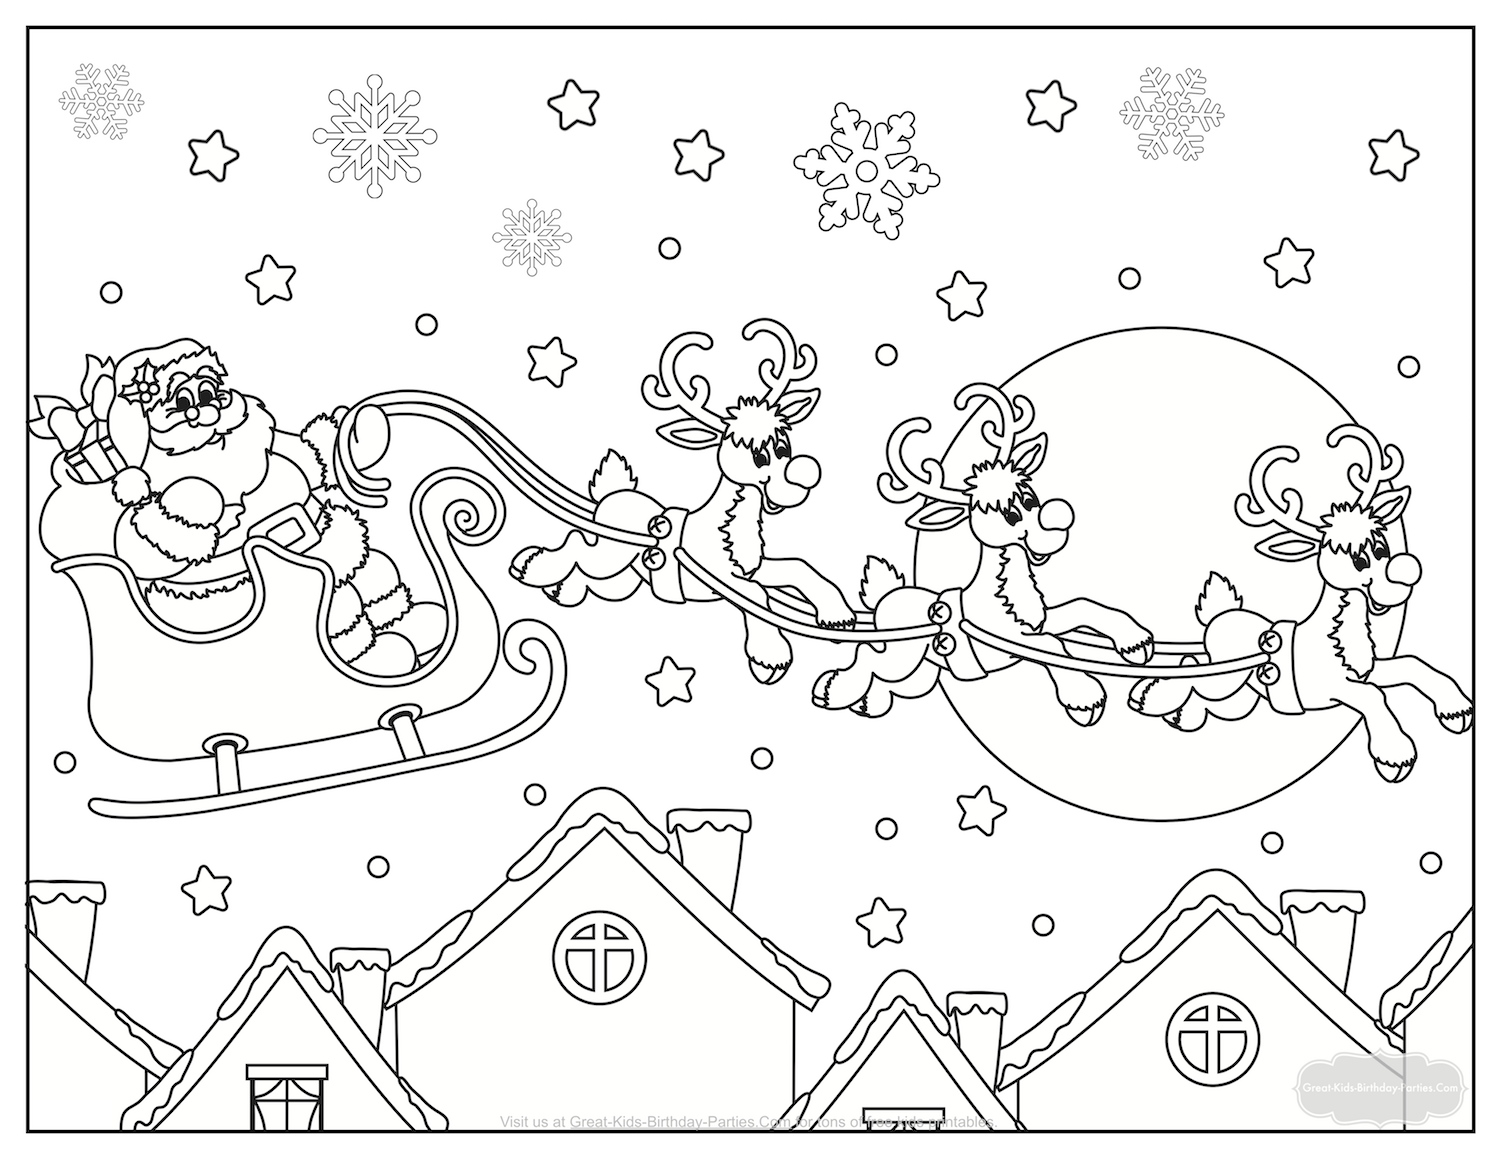 heres a beautiful santa coloring page with added graphics for more coloring fun click on image